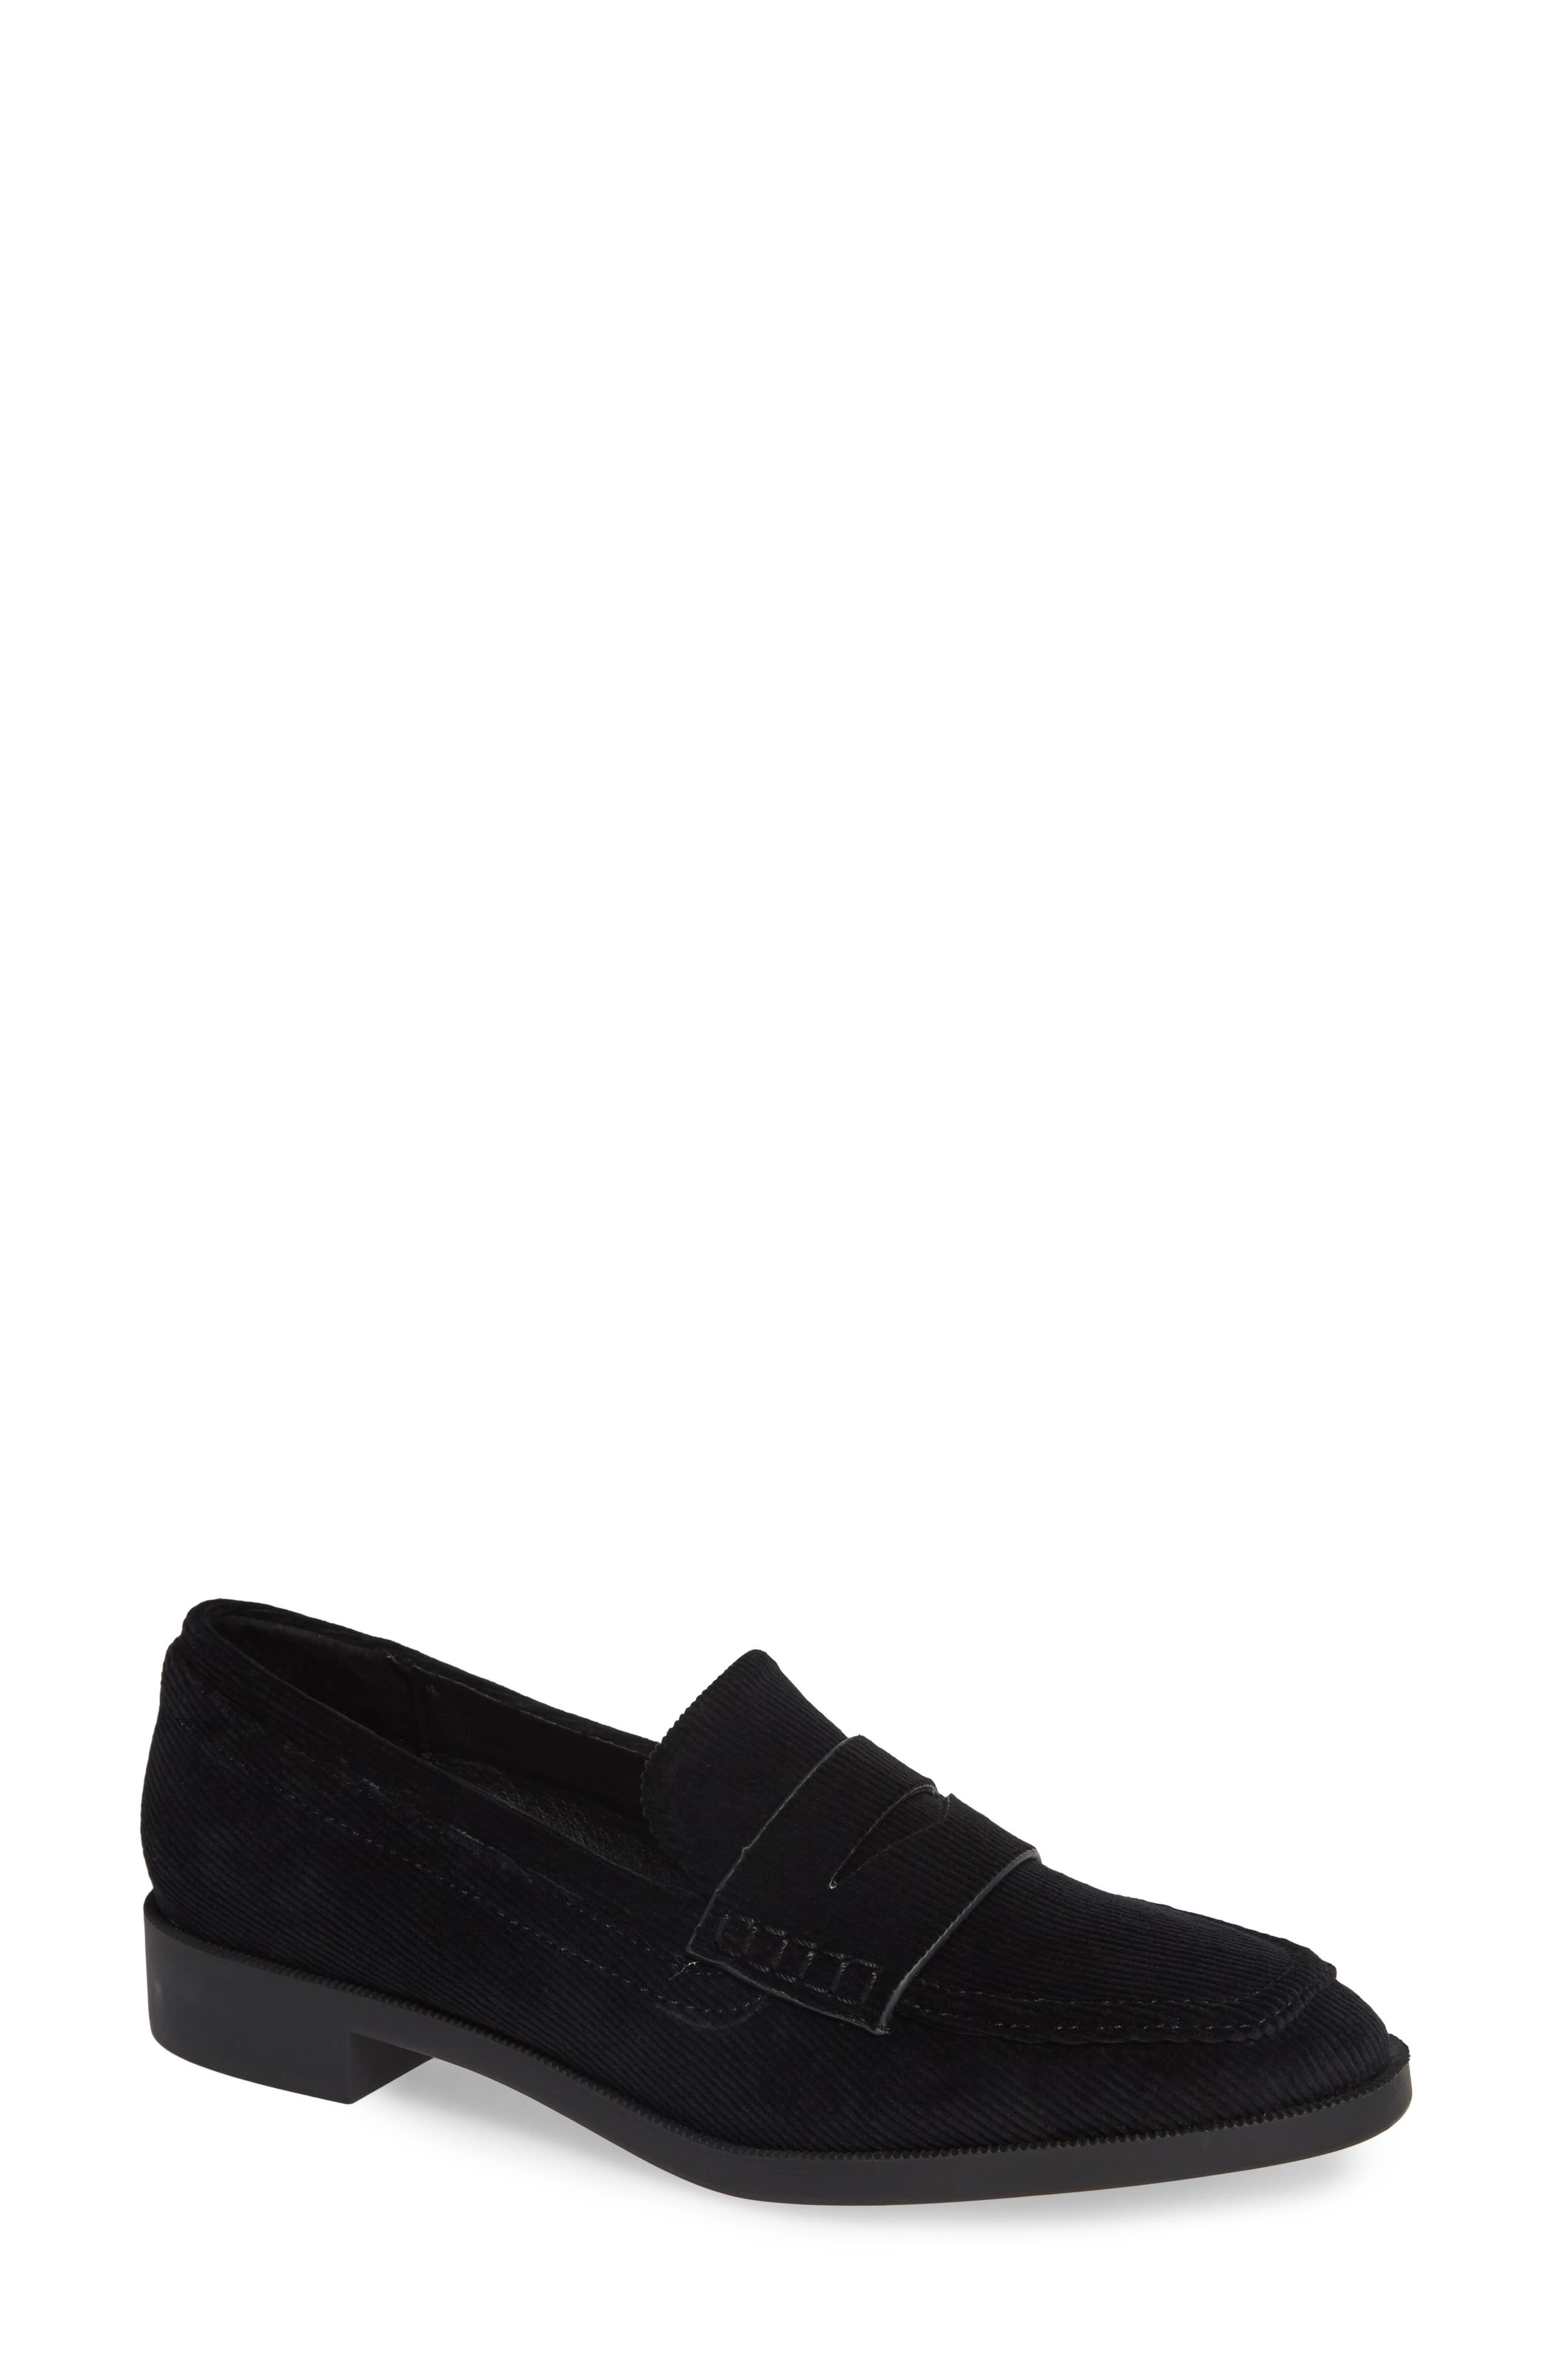 Diplomat Penny Loafer,                             Main thumbnail 1, color,                             BLACK FABRIC